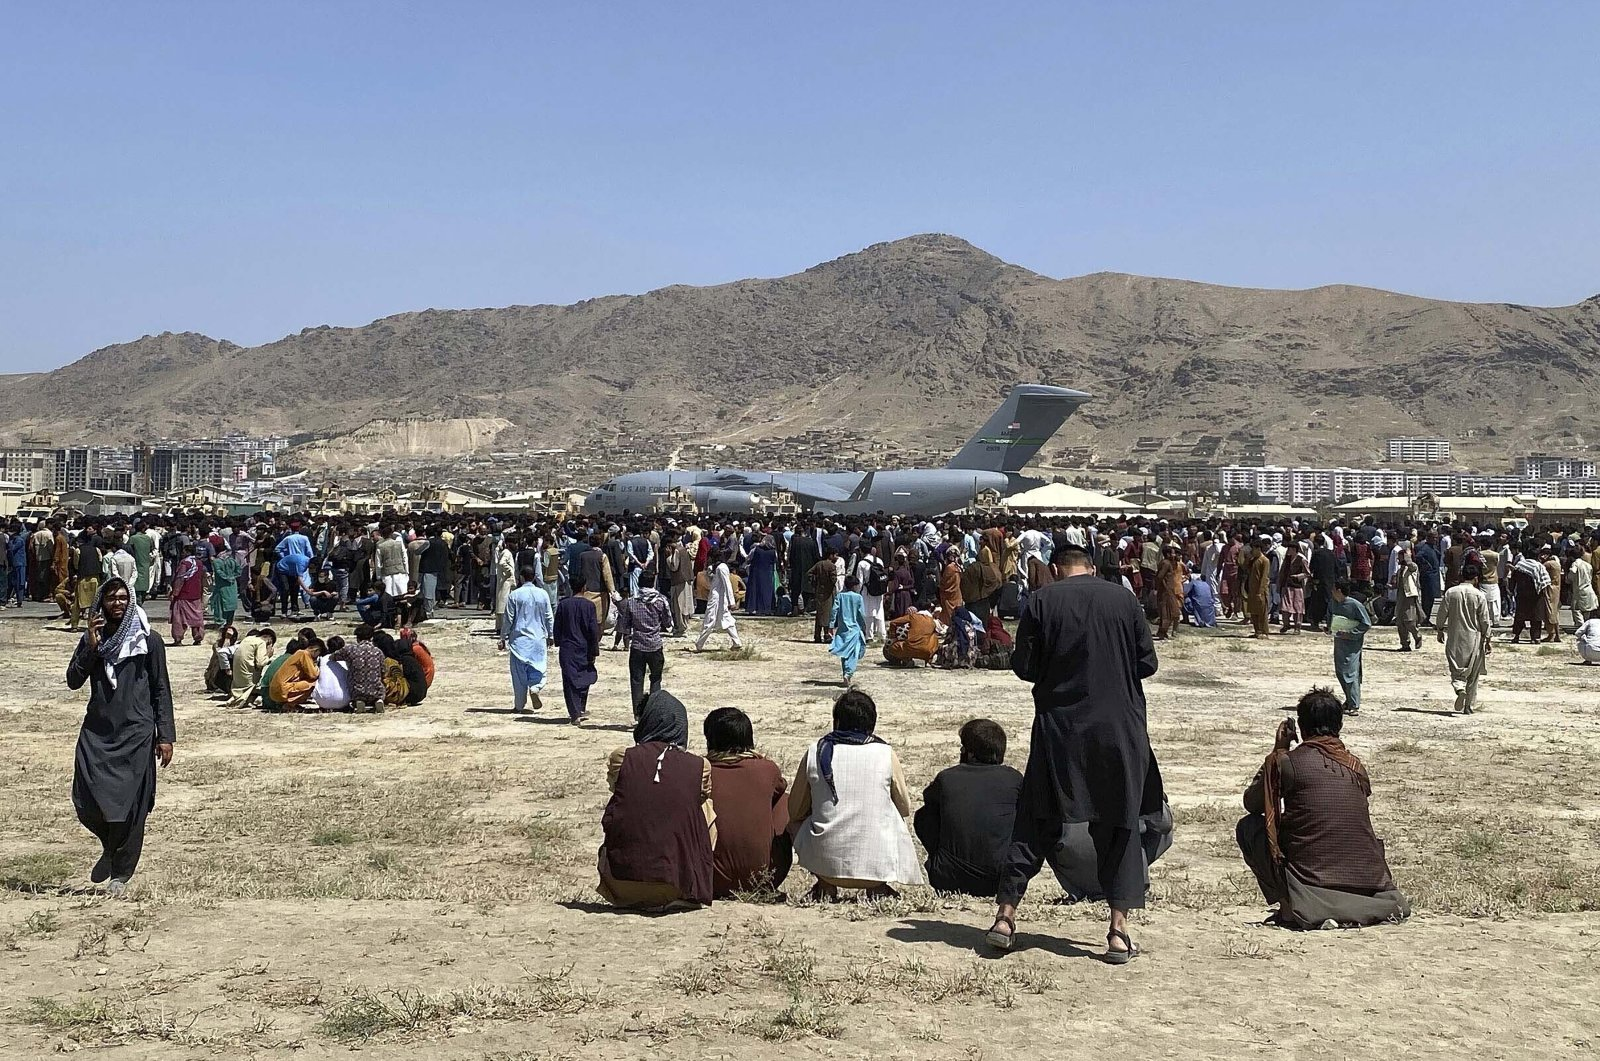 Hundreds of people gather near a U.S. Air Force C-17 transport plane along the perimeter at the international airport in Kabul, Afghanistan, Aug. 16, 2021. (AP Photo)